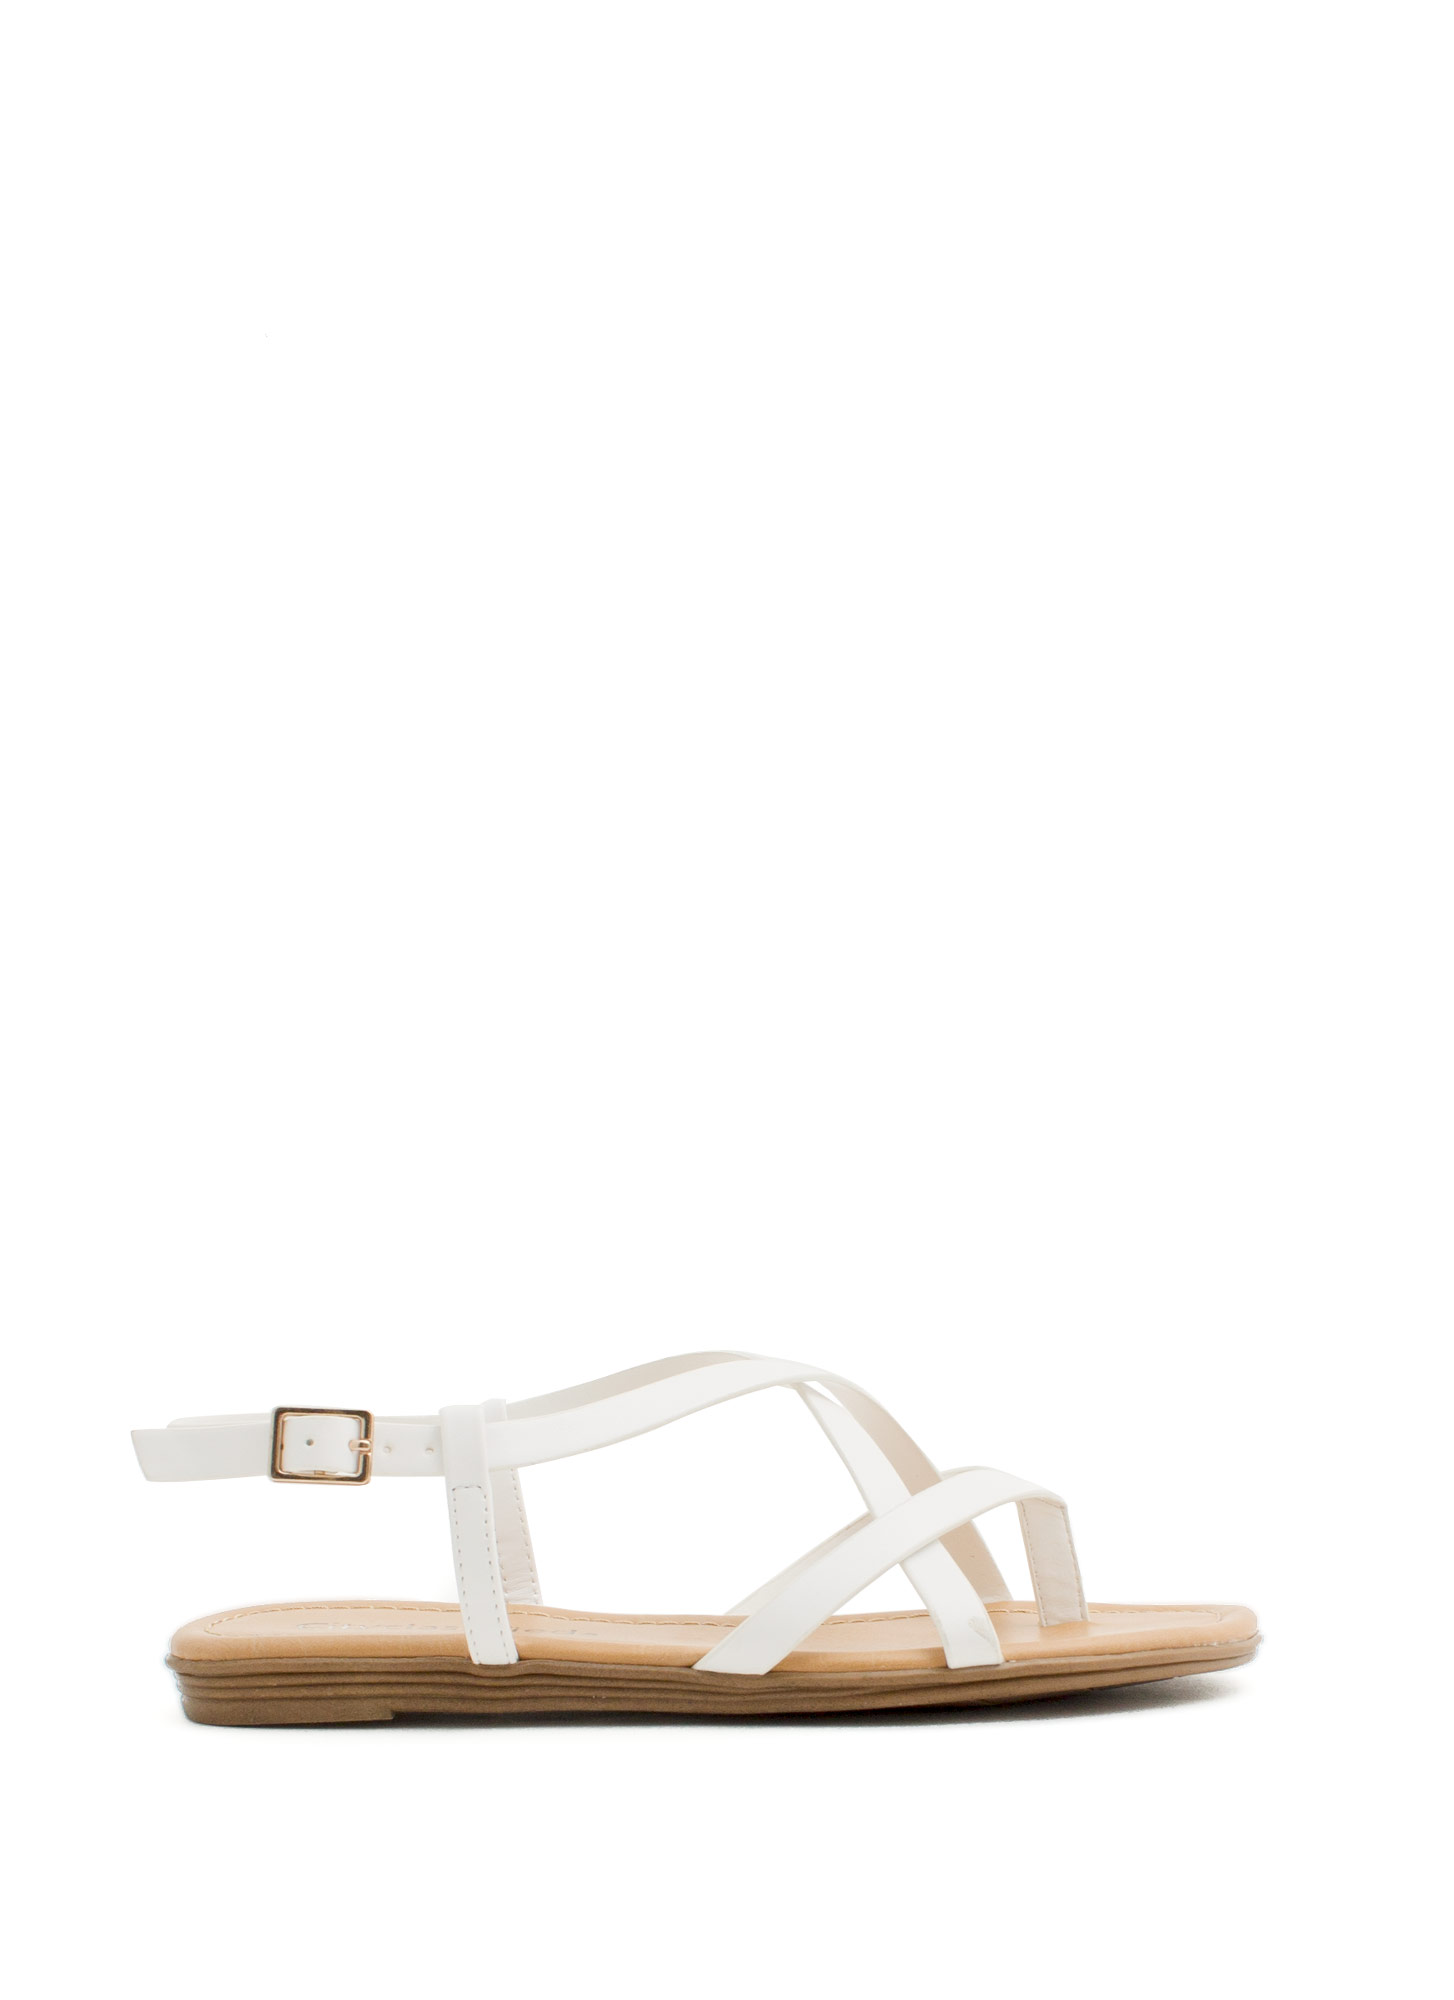 Summertime Radness Strappy Sandals OFFWHITE